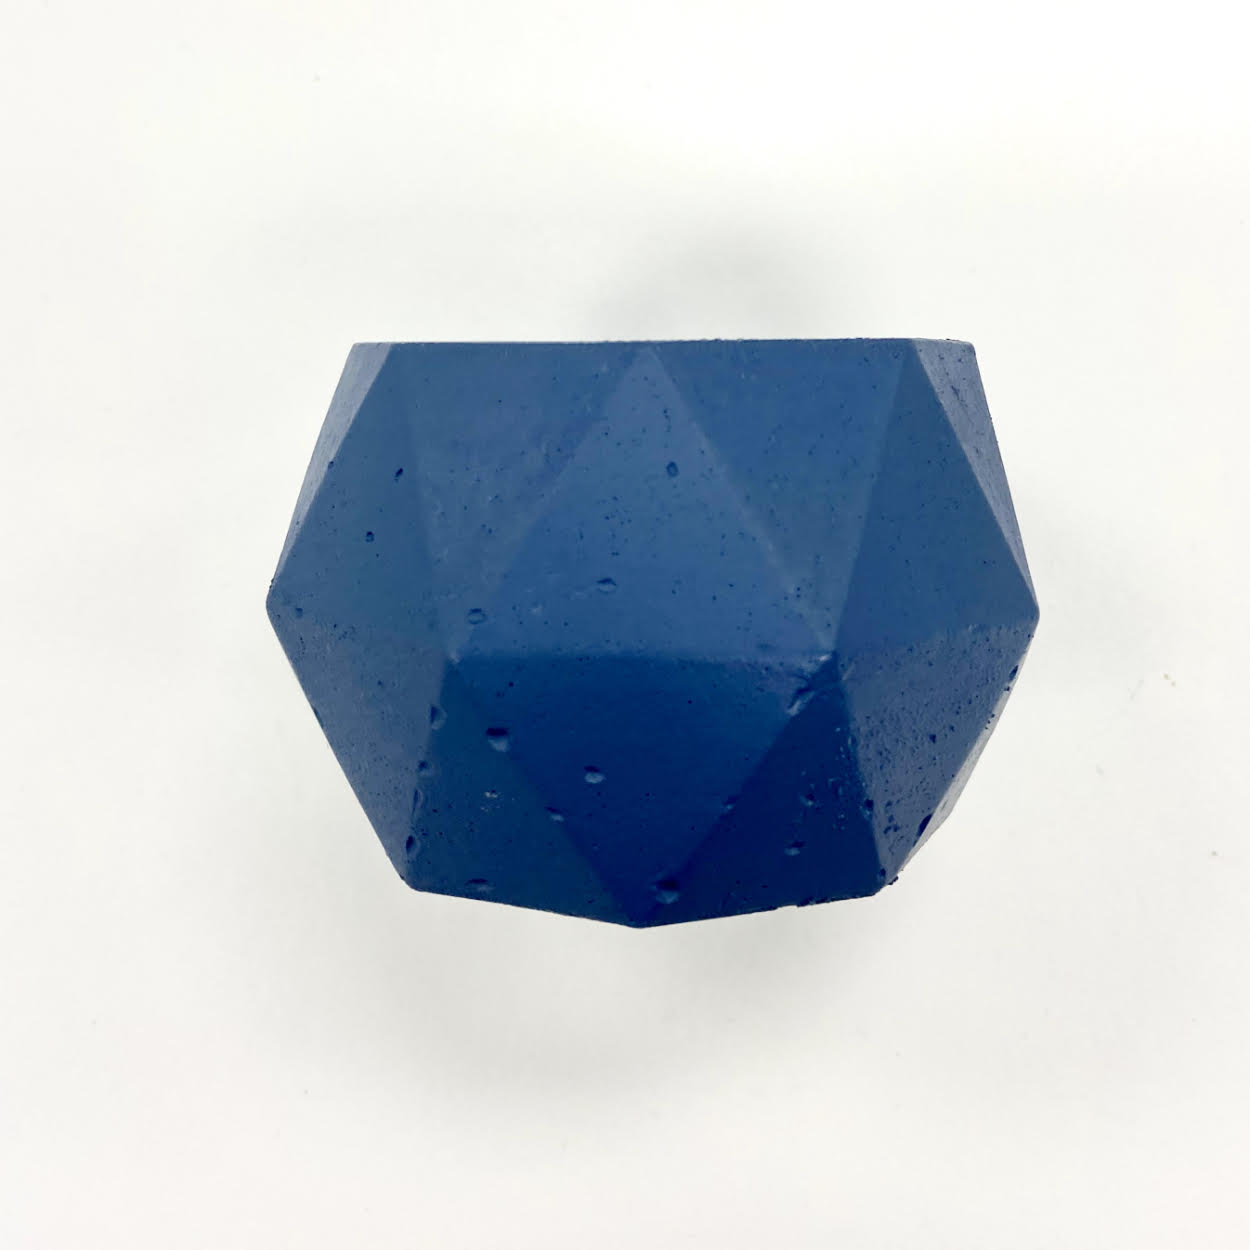 Image of a Dark Blue Geometric Candle Holder